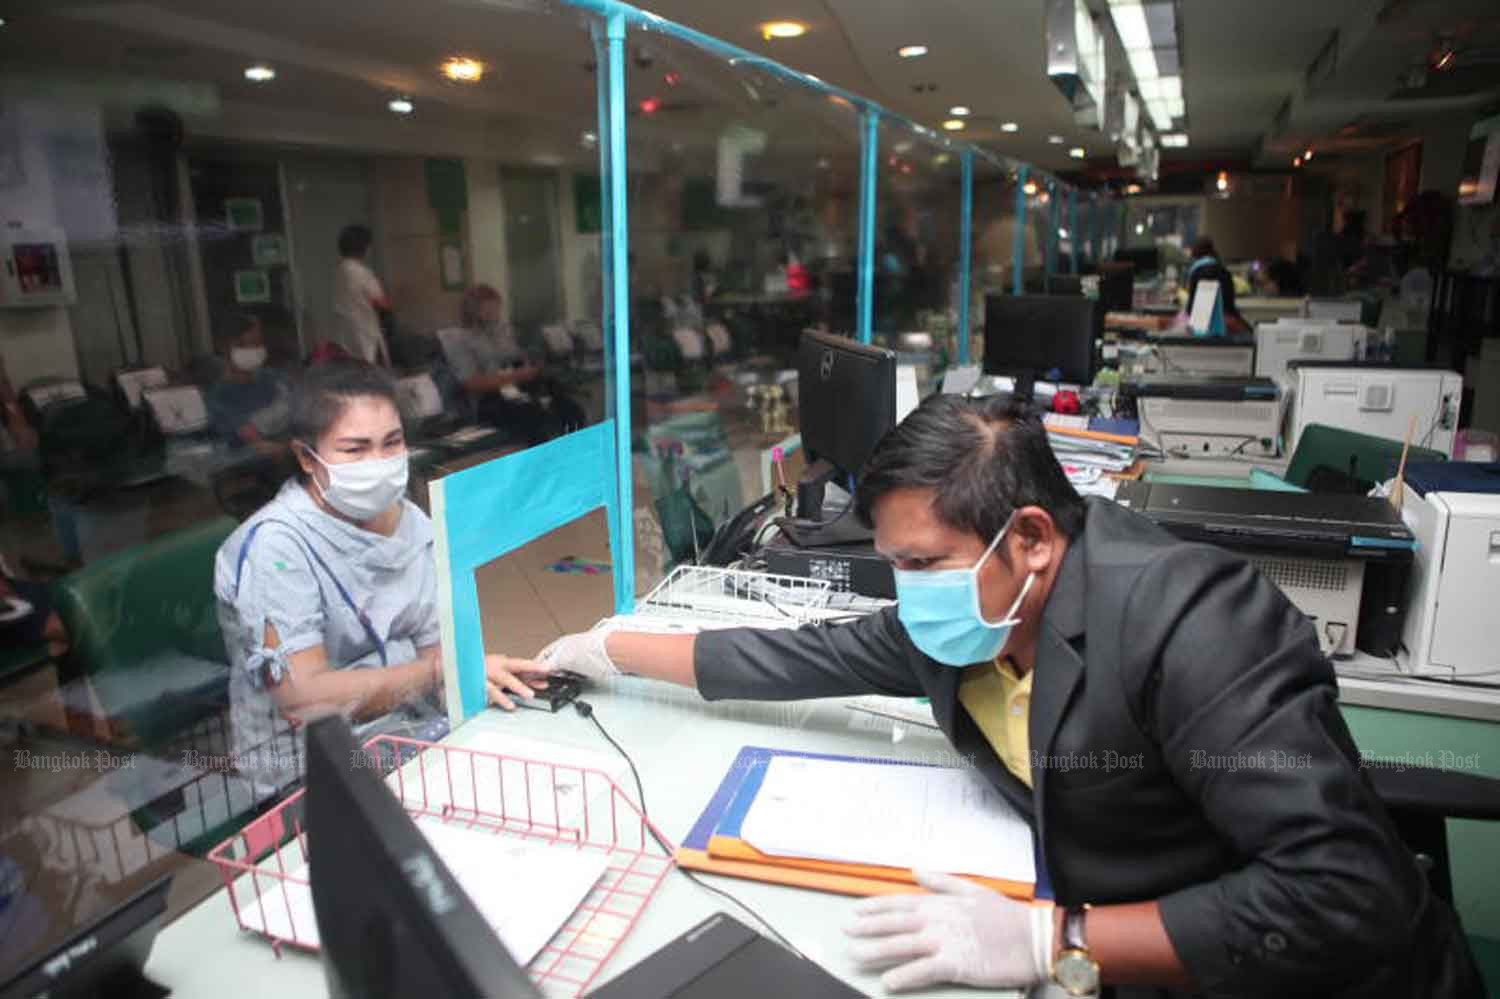 A transparent partition was installed to limit the spread of the novel coronavirus that causes Covid-19 at the Wattana district office's service outlet on Thong Lor Road in Bangkok on Monday. (Photo: Apichart Jinakukl)